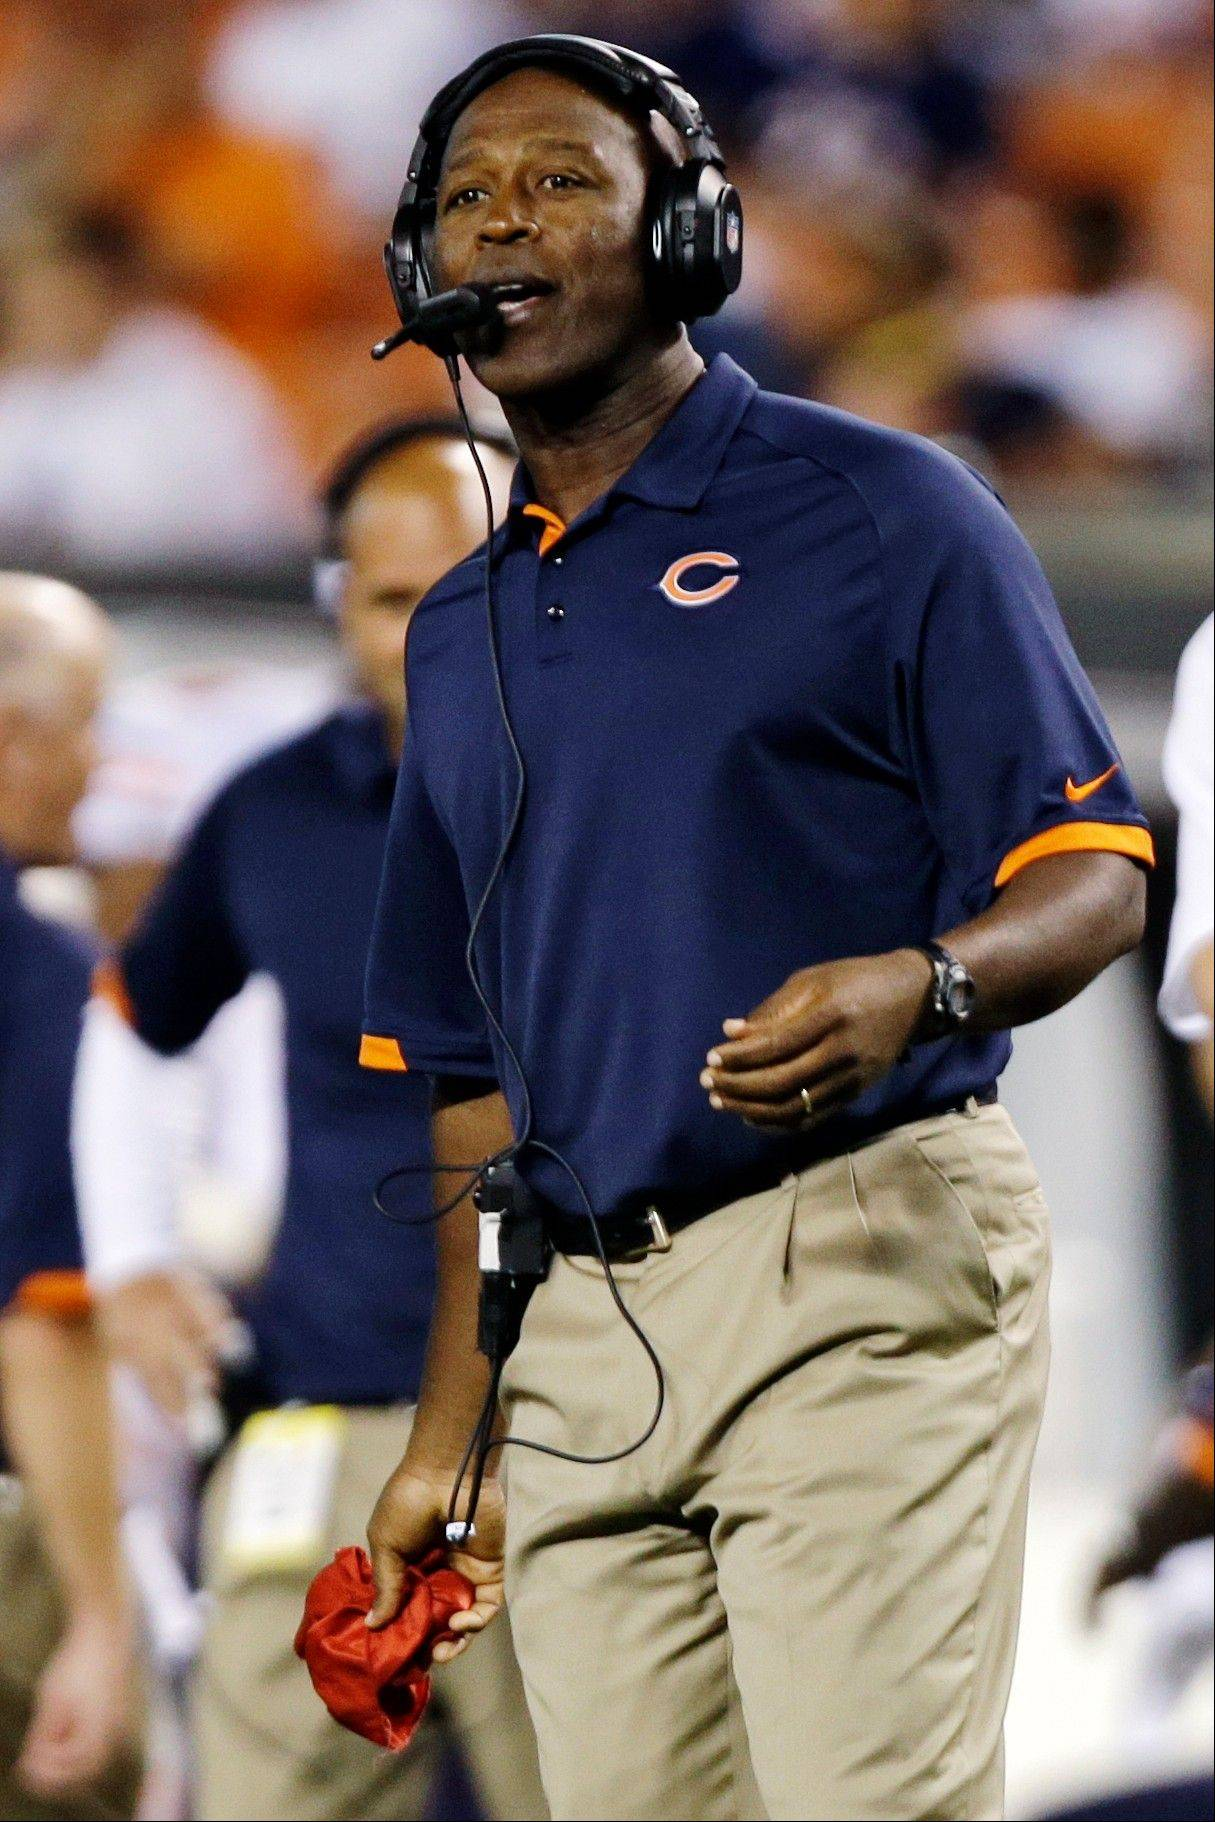 Chicago Bears head coach Lovie Smith challenges a call of an incomplete pass by the Cleveland Browns in the third quarter of a preseason NFL football game, Thursday, Aug. 30, 2012, in Cleveland. The call was reversed after review resulting in an interception return for a touchdown by Bears cornerback Greg McCoy.